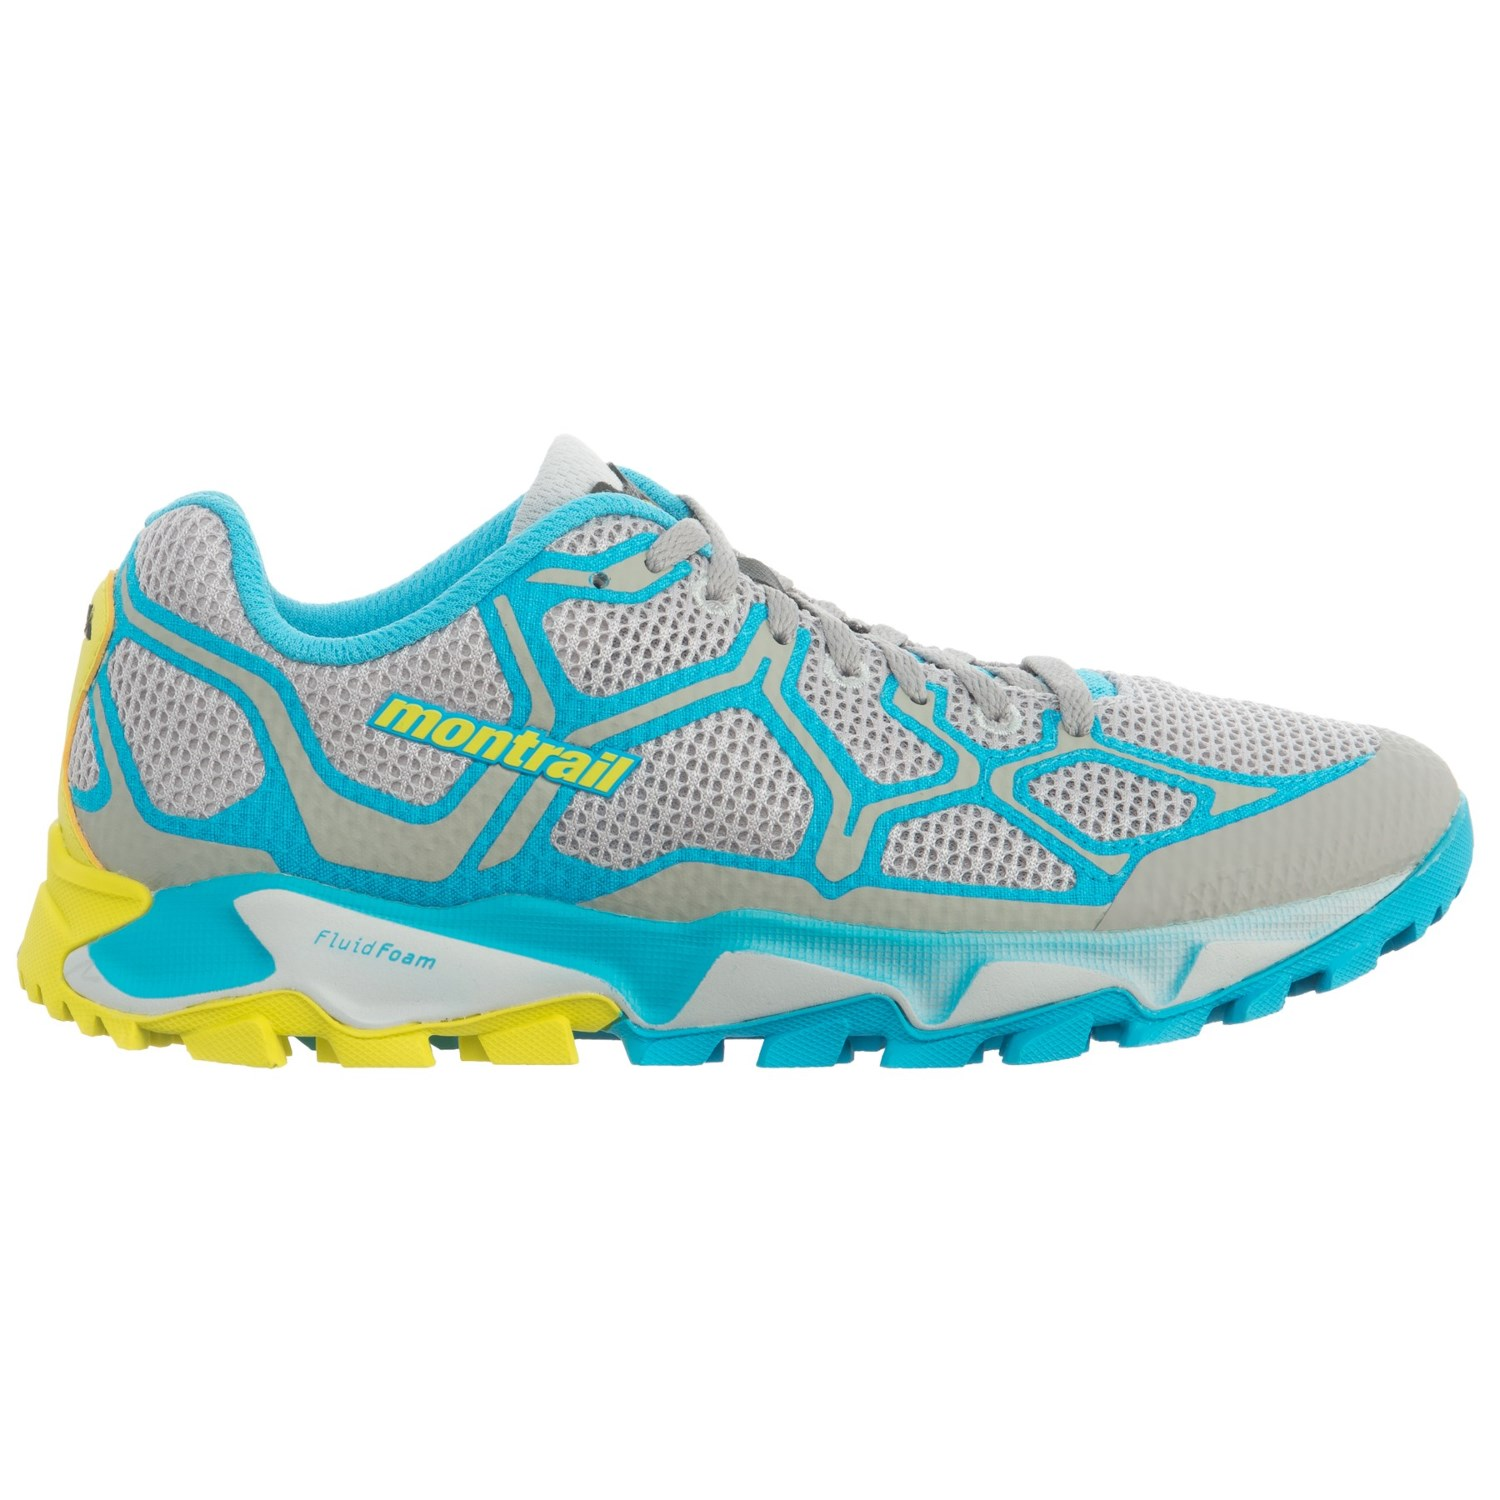 b54cb566998f Montrail Trans Alps F.K.T. Trail Running Shoes (For Women) - Save 62%